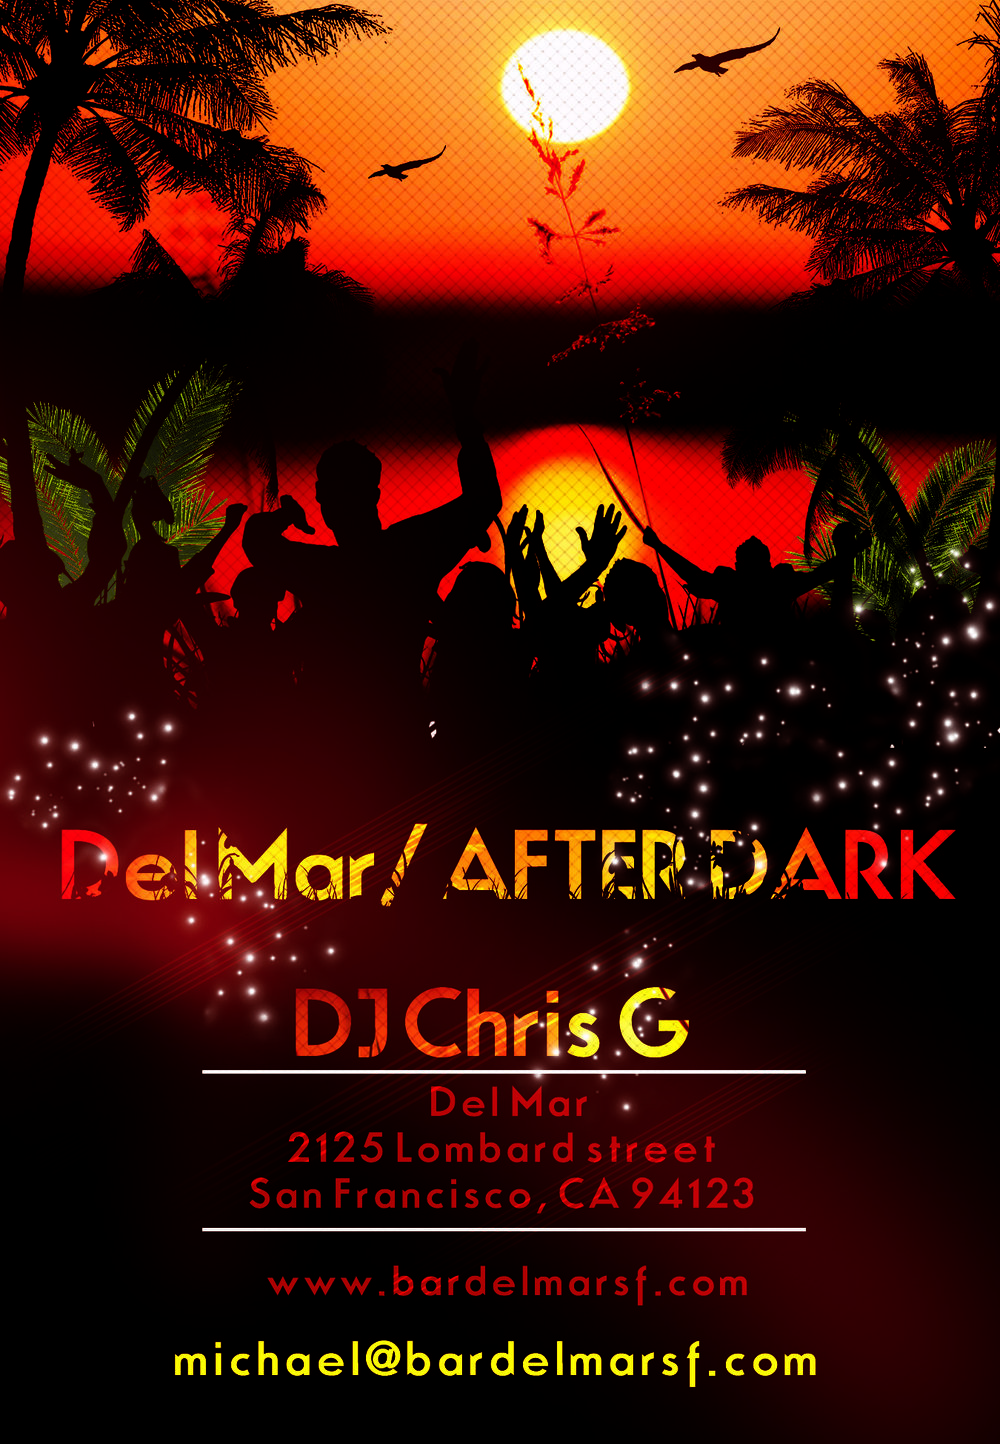 Del Mar After Dark flyer DJ Chris G.jpg